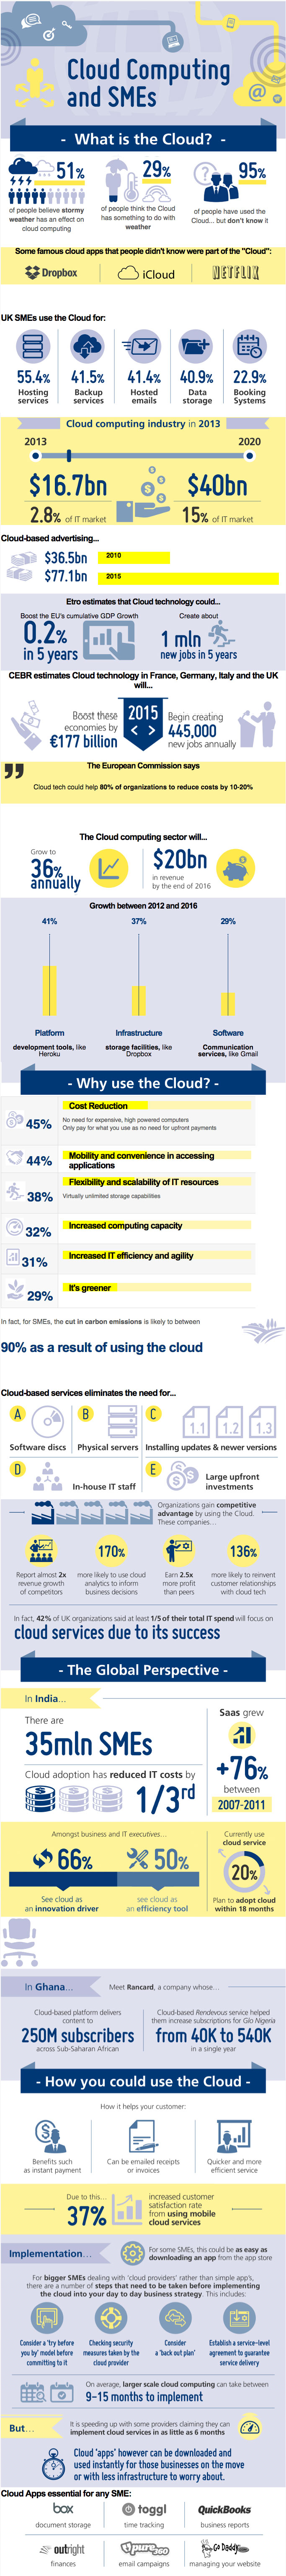 Cloud-Computing-and-SMEs